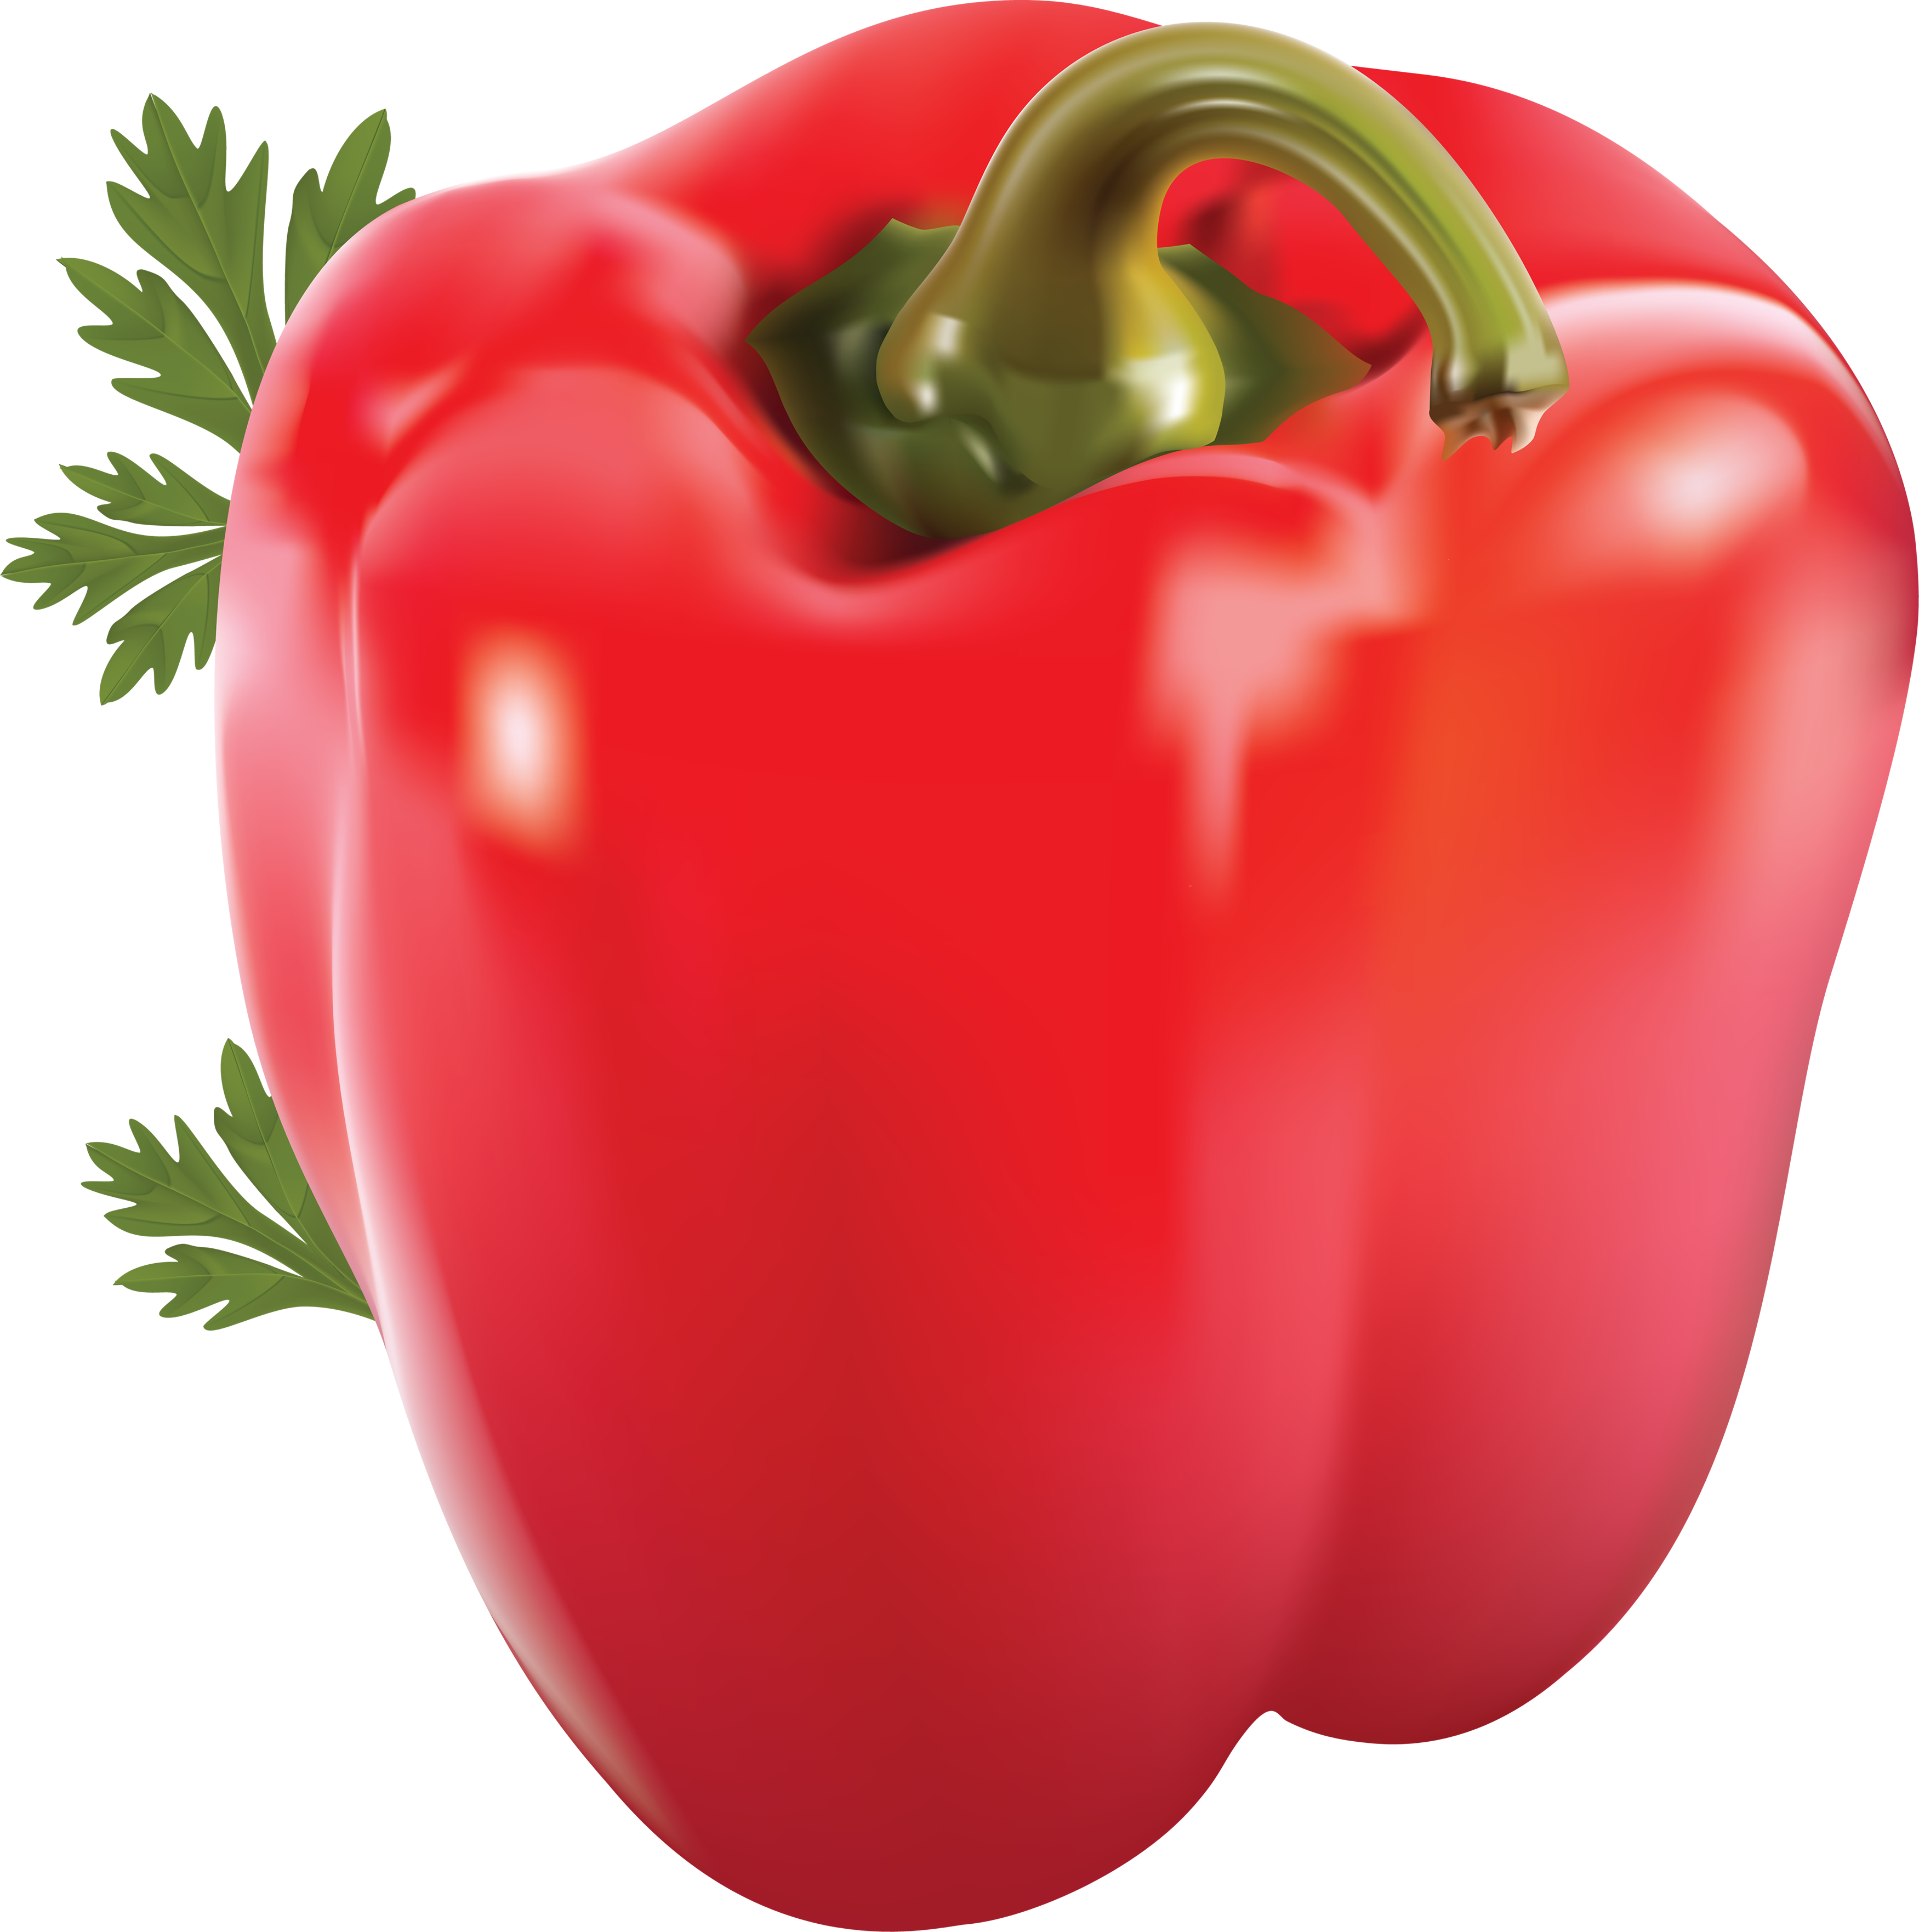 Red bell pepper png. Image purepng free transparent